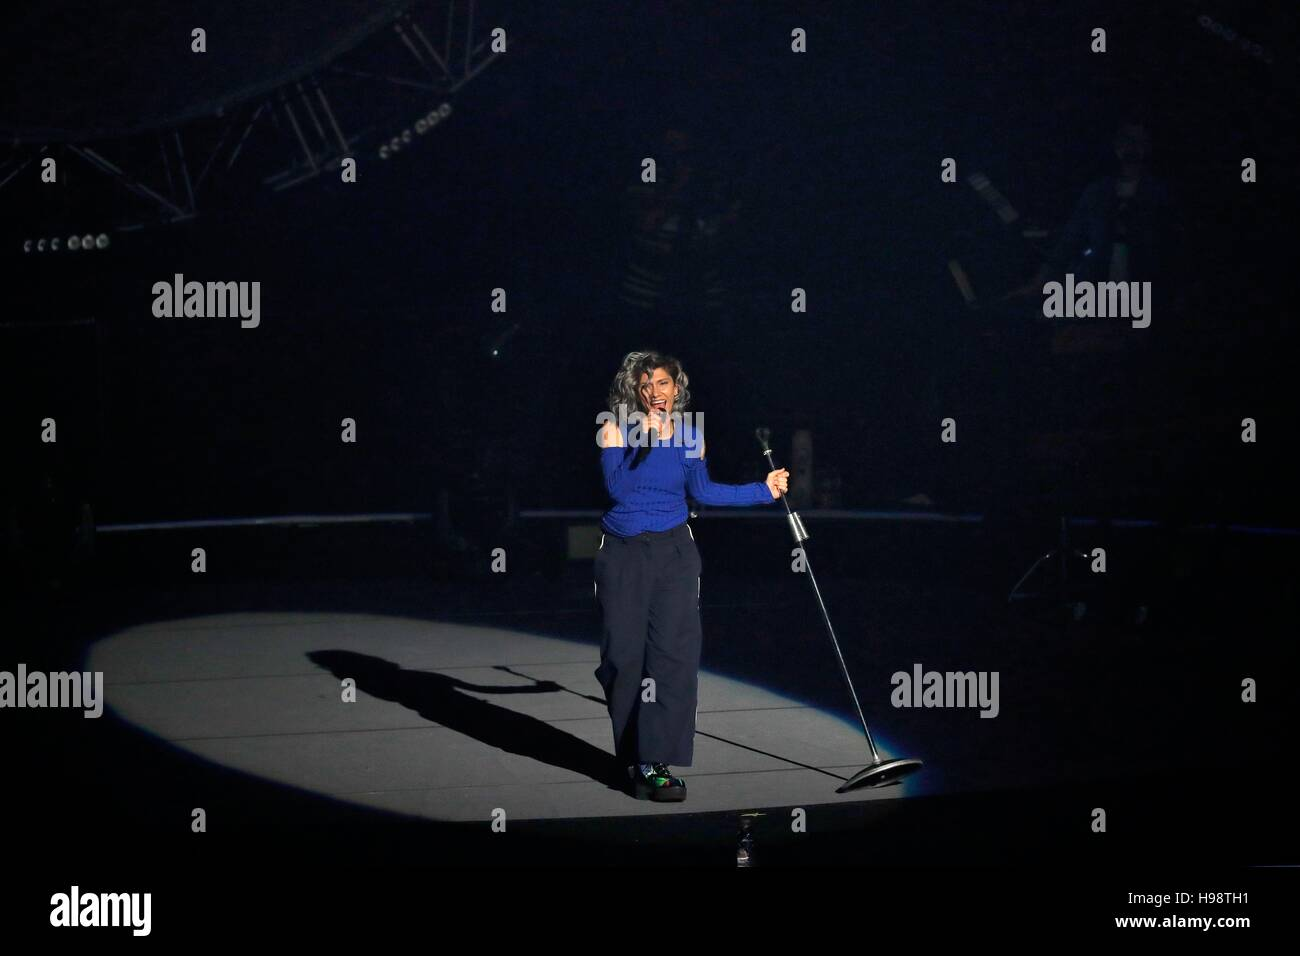 italian singer elisa stockfotos italian singer elisa bilder alamy. Black Bedroom Furniture Sets. Home Design Ideas